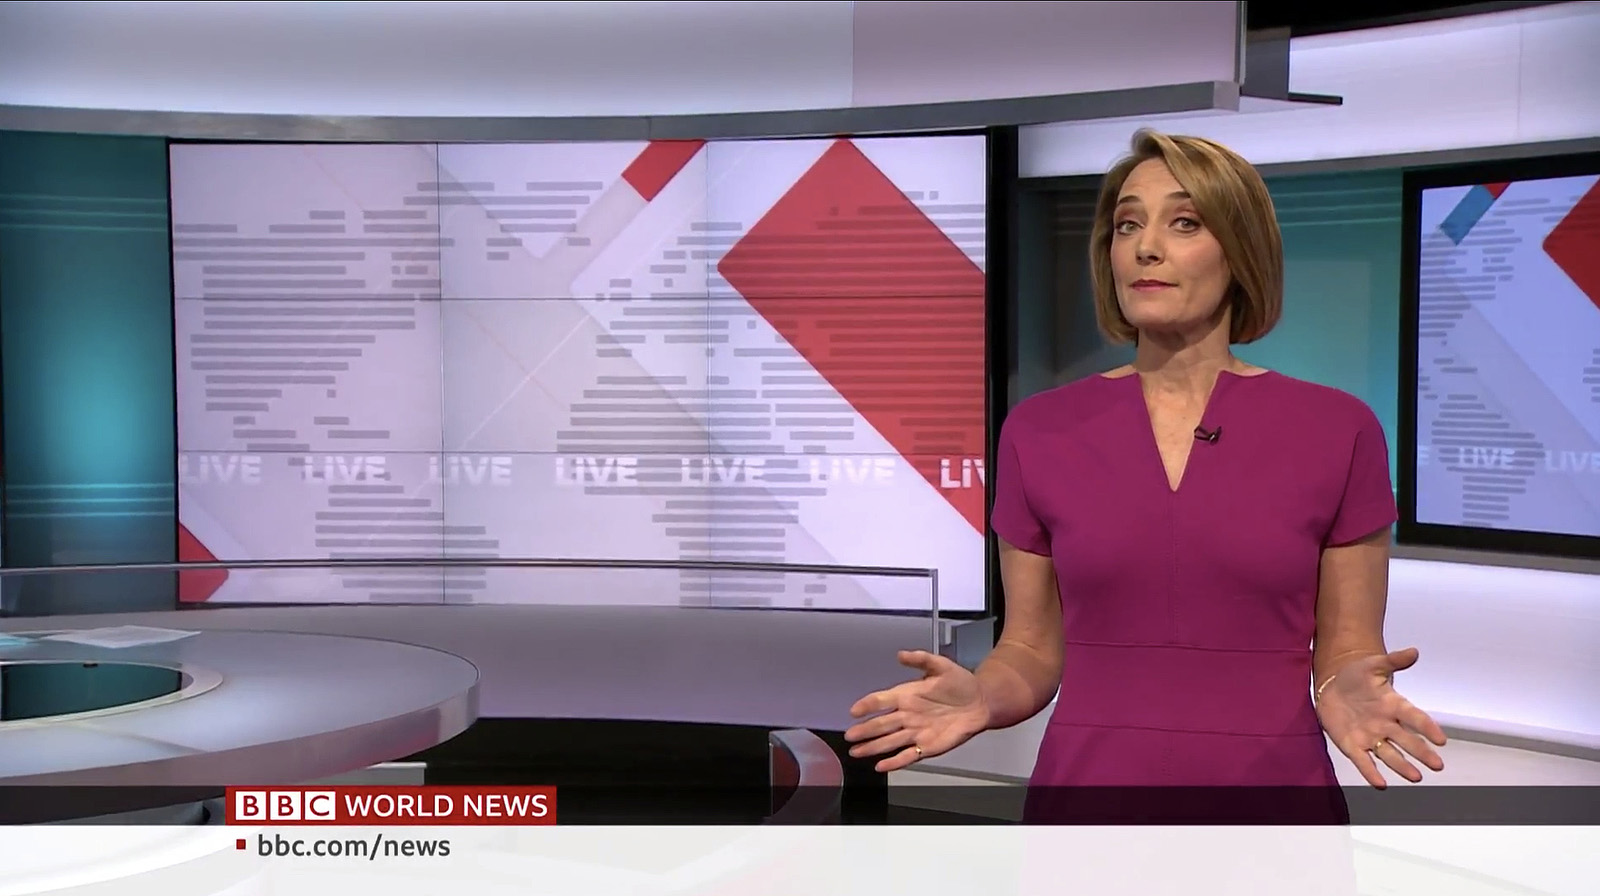 NCS_Live_Lucy-Hockings_BBC-World-News_014